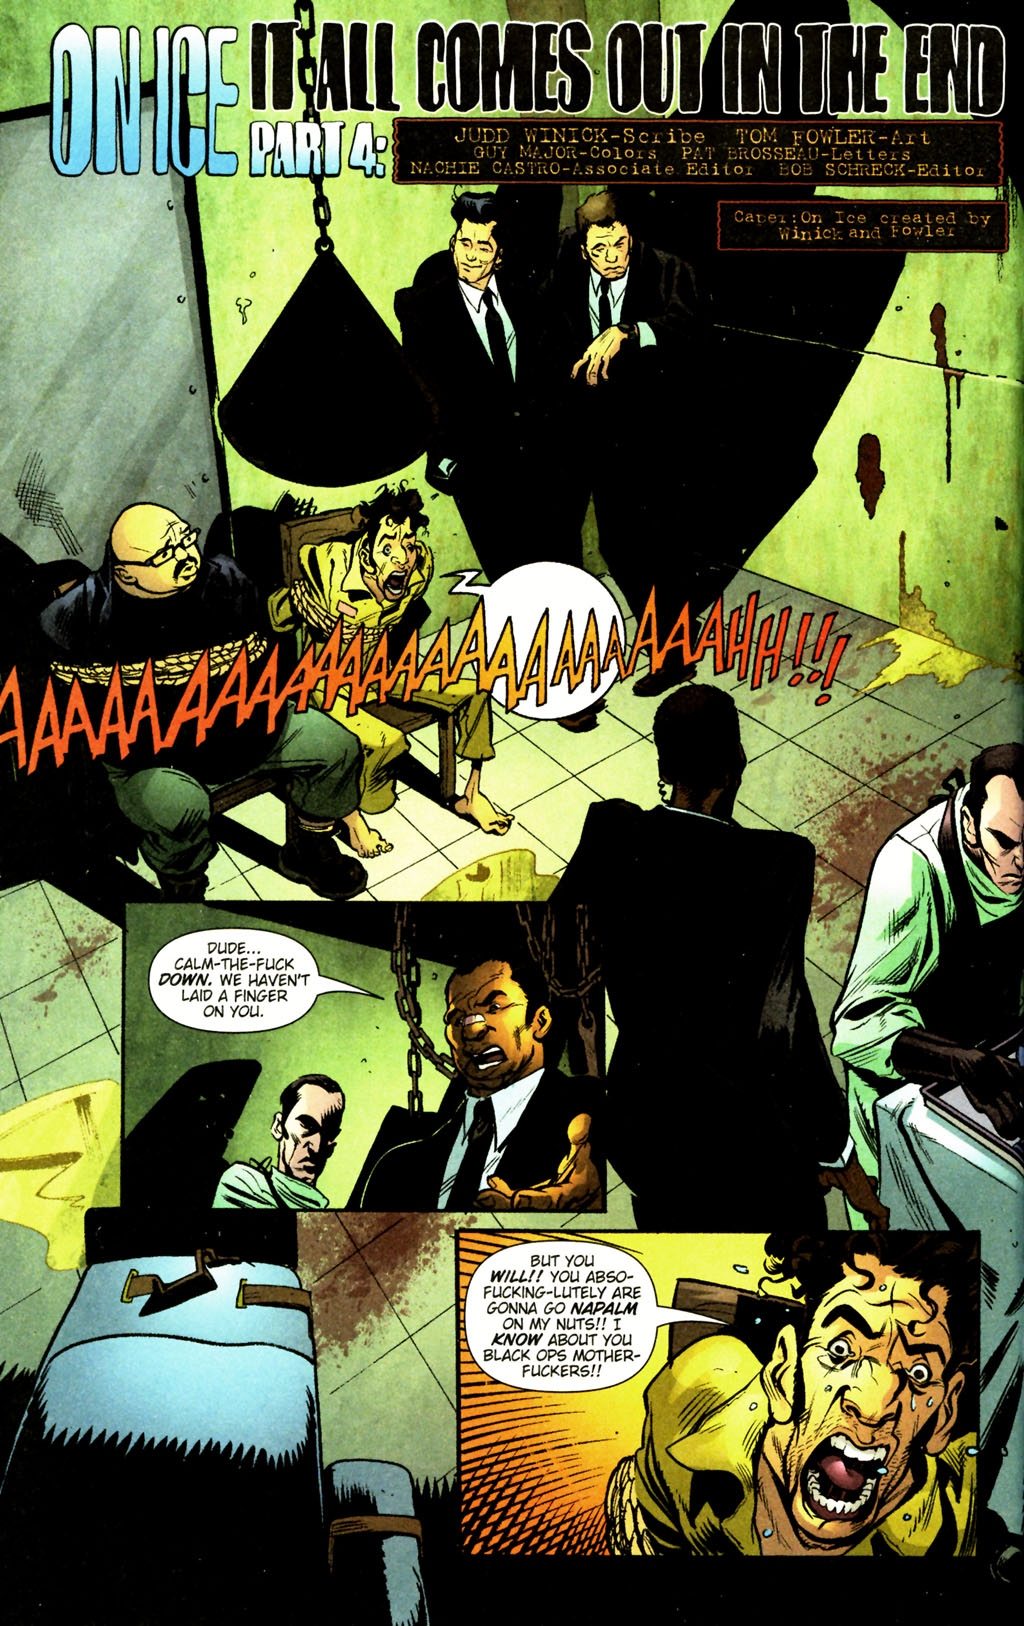 Read online Caper comic -  Issue #12 - 3